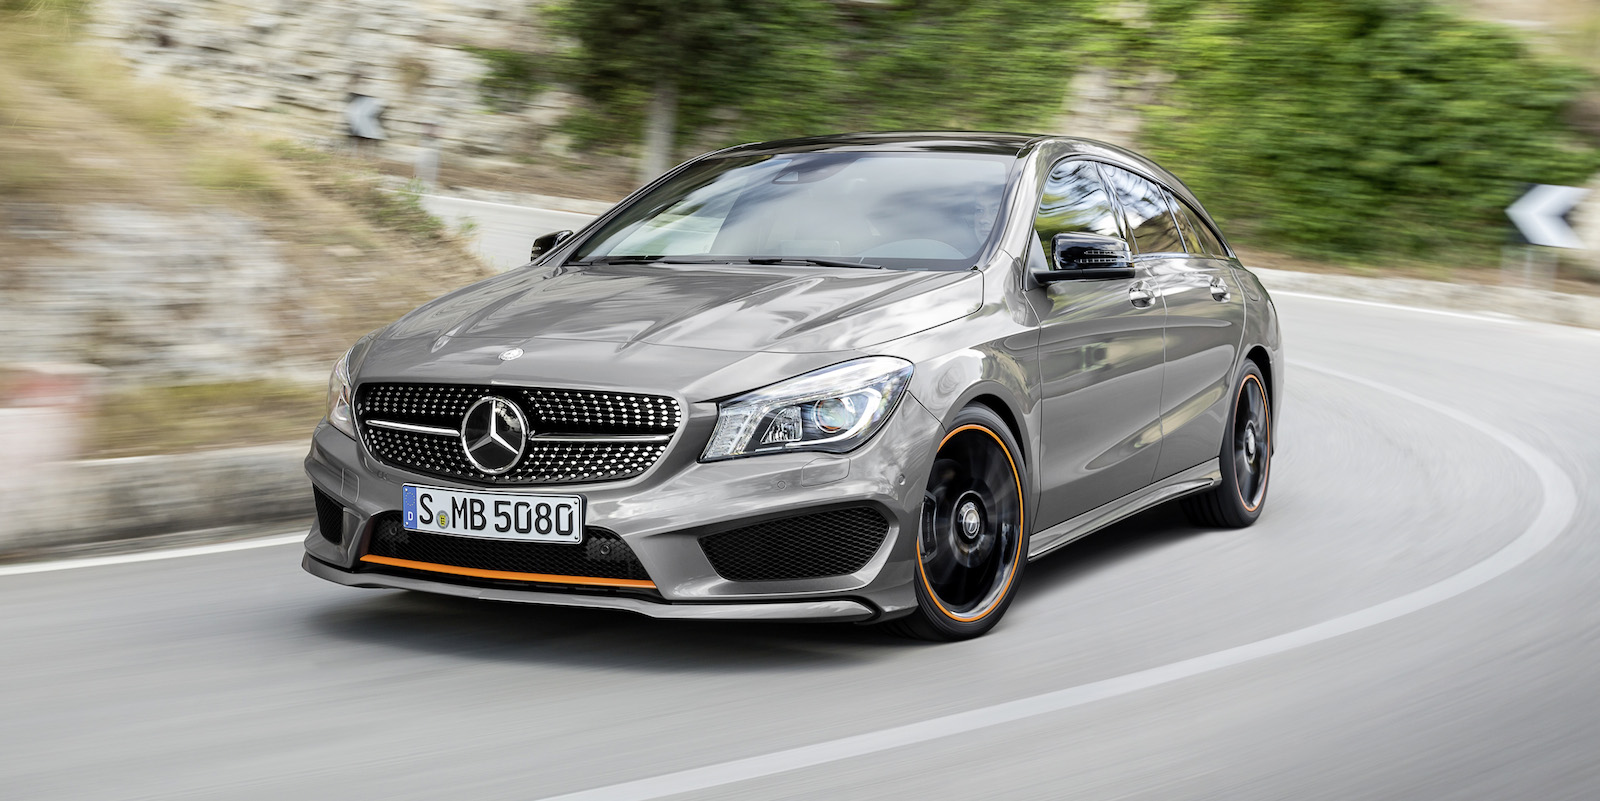 Cla Shooting Brake Review >> 2015 Mercedes-Benz CLA Shooting Brake Review | CarAdvice